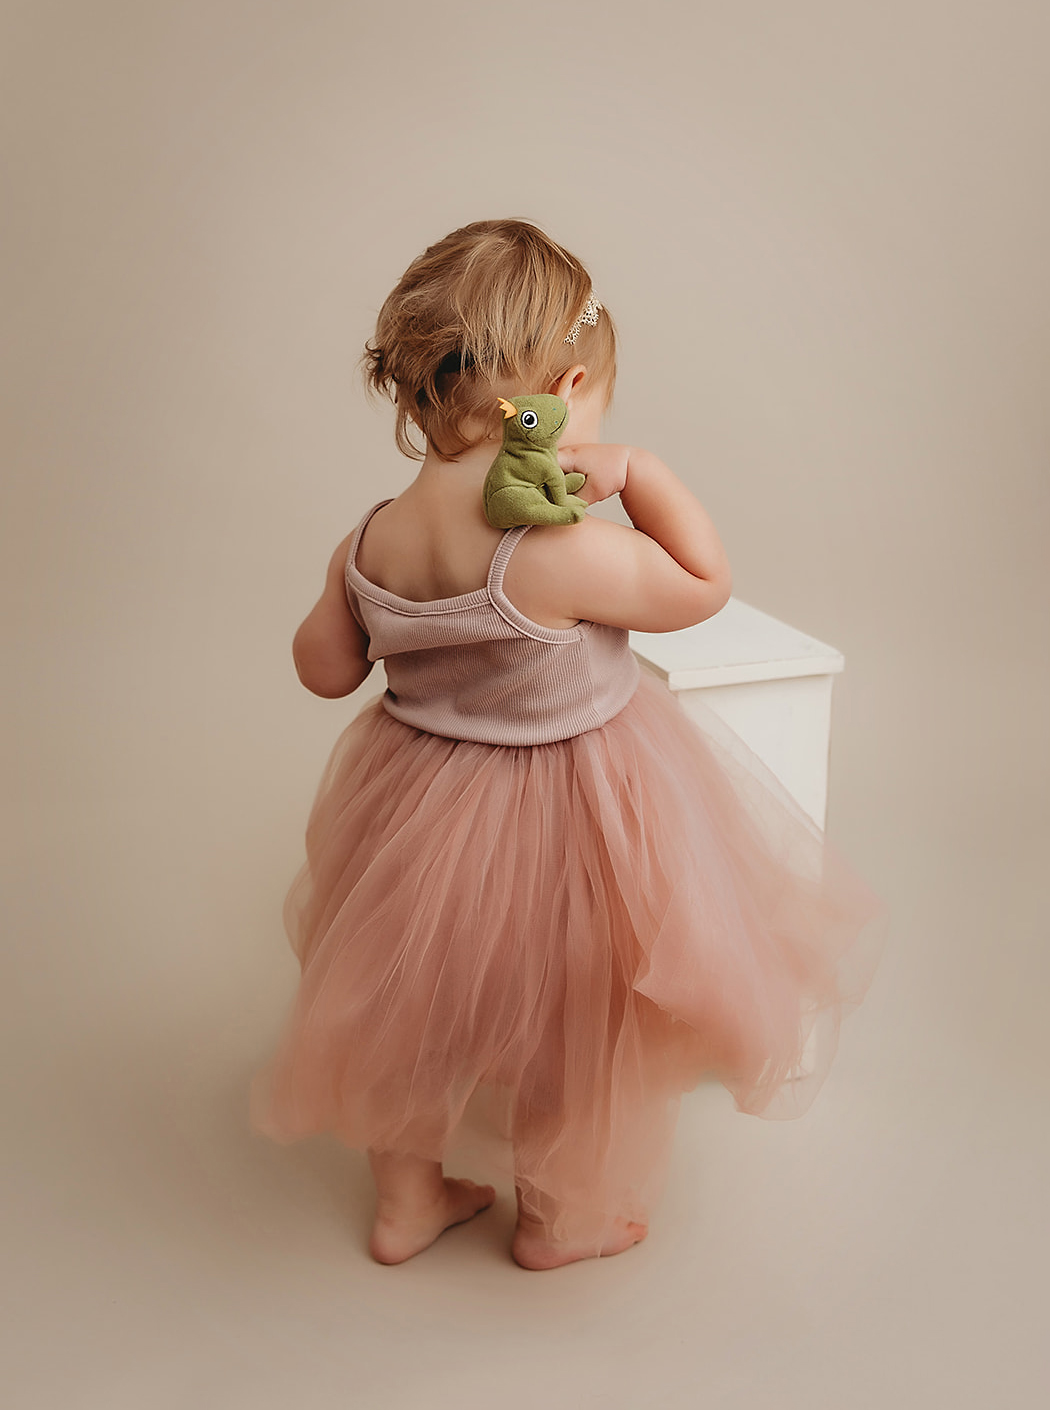 Toddler in pink dress plays with toy frog